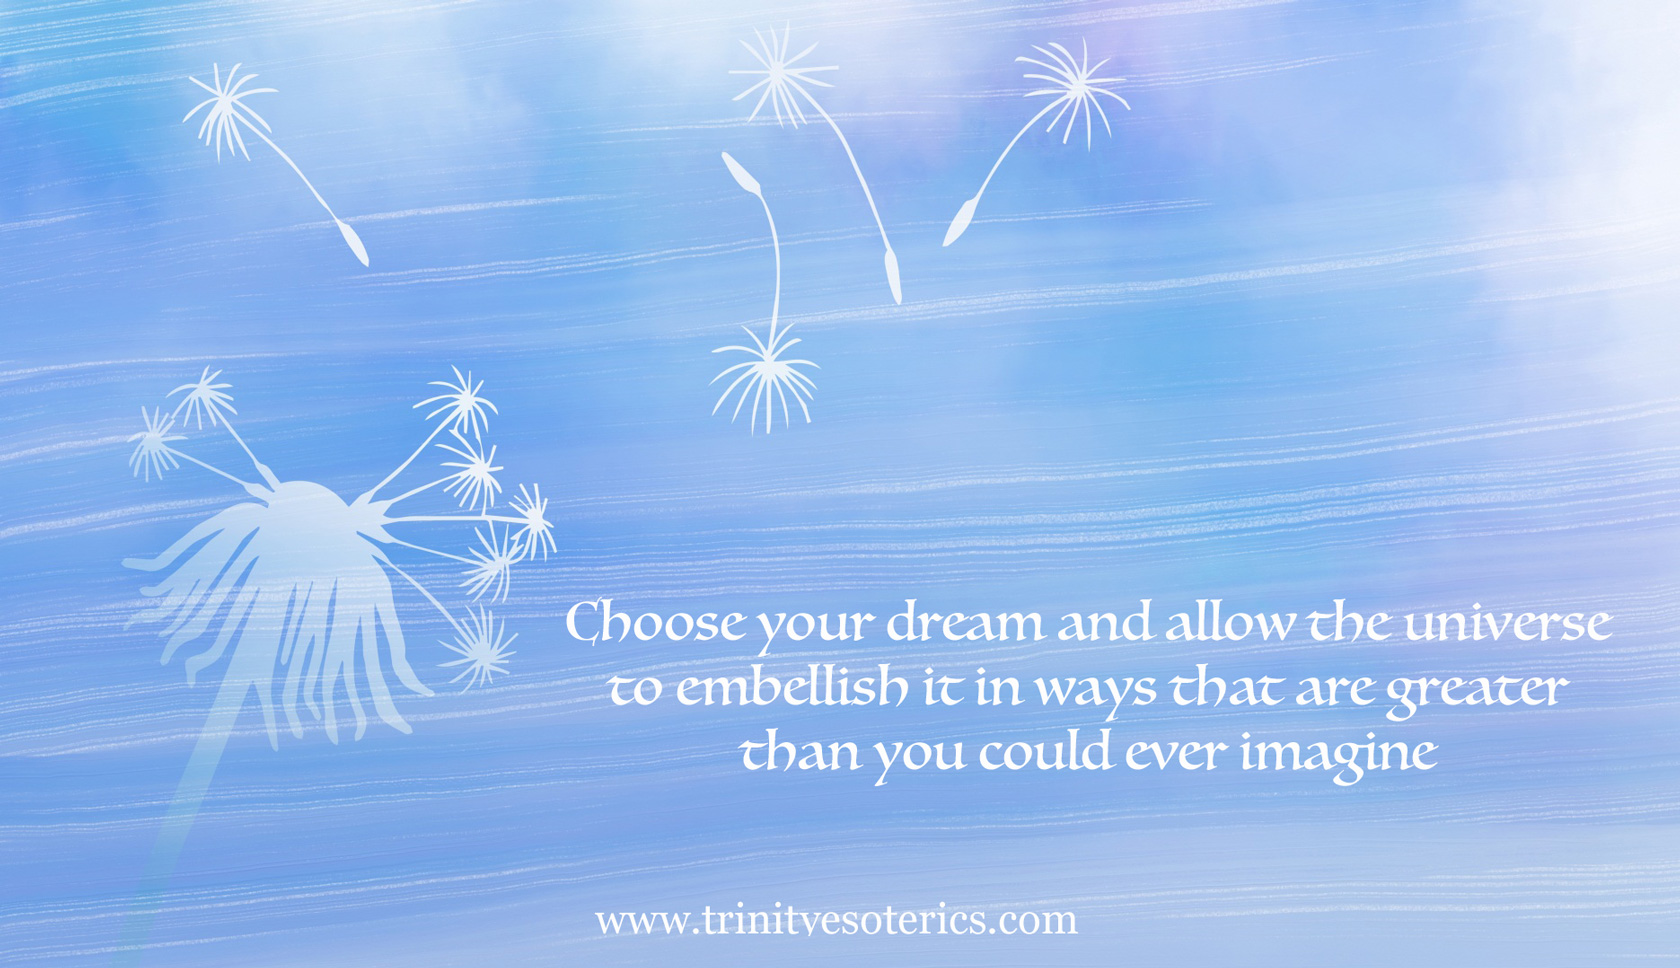 dandelion wishes choose dream trinity esoterics